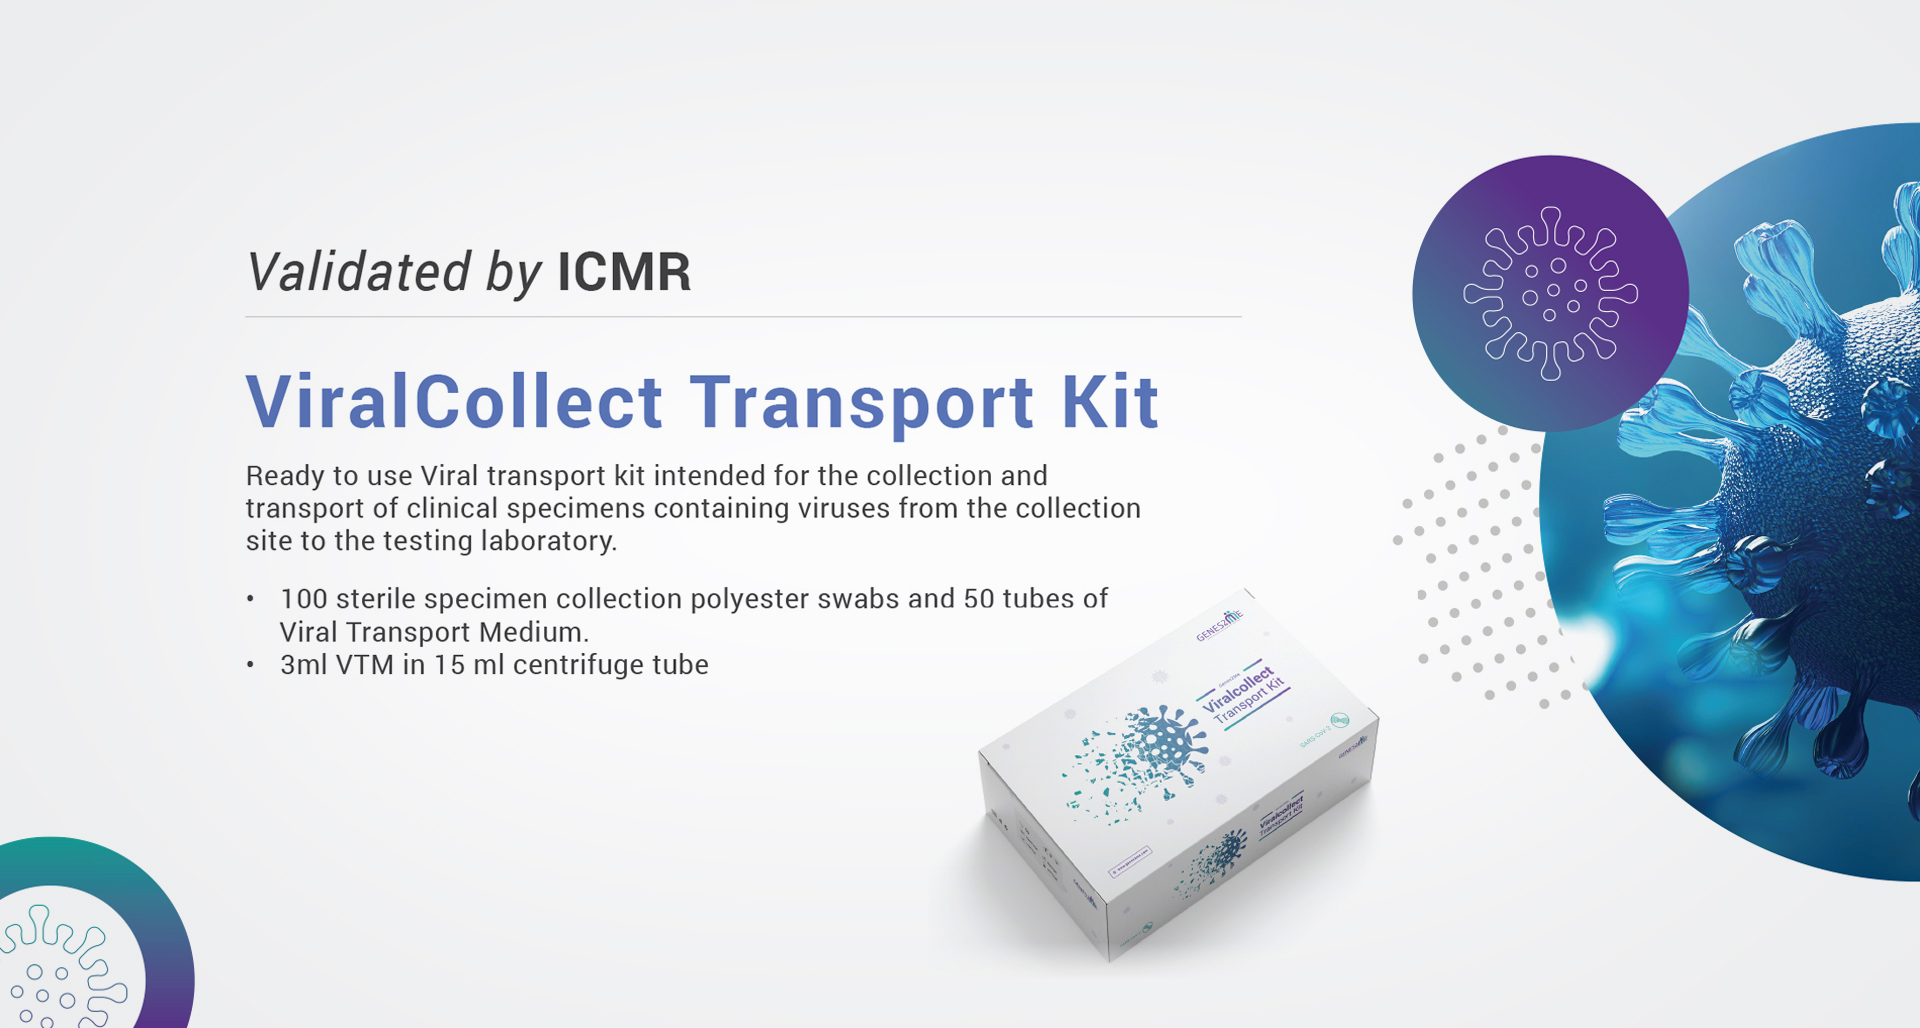 viralcollect-transport-kit